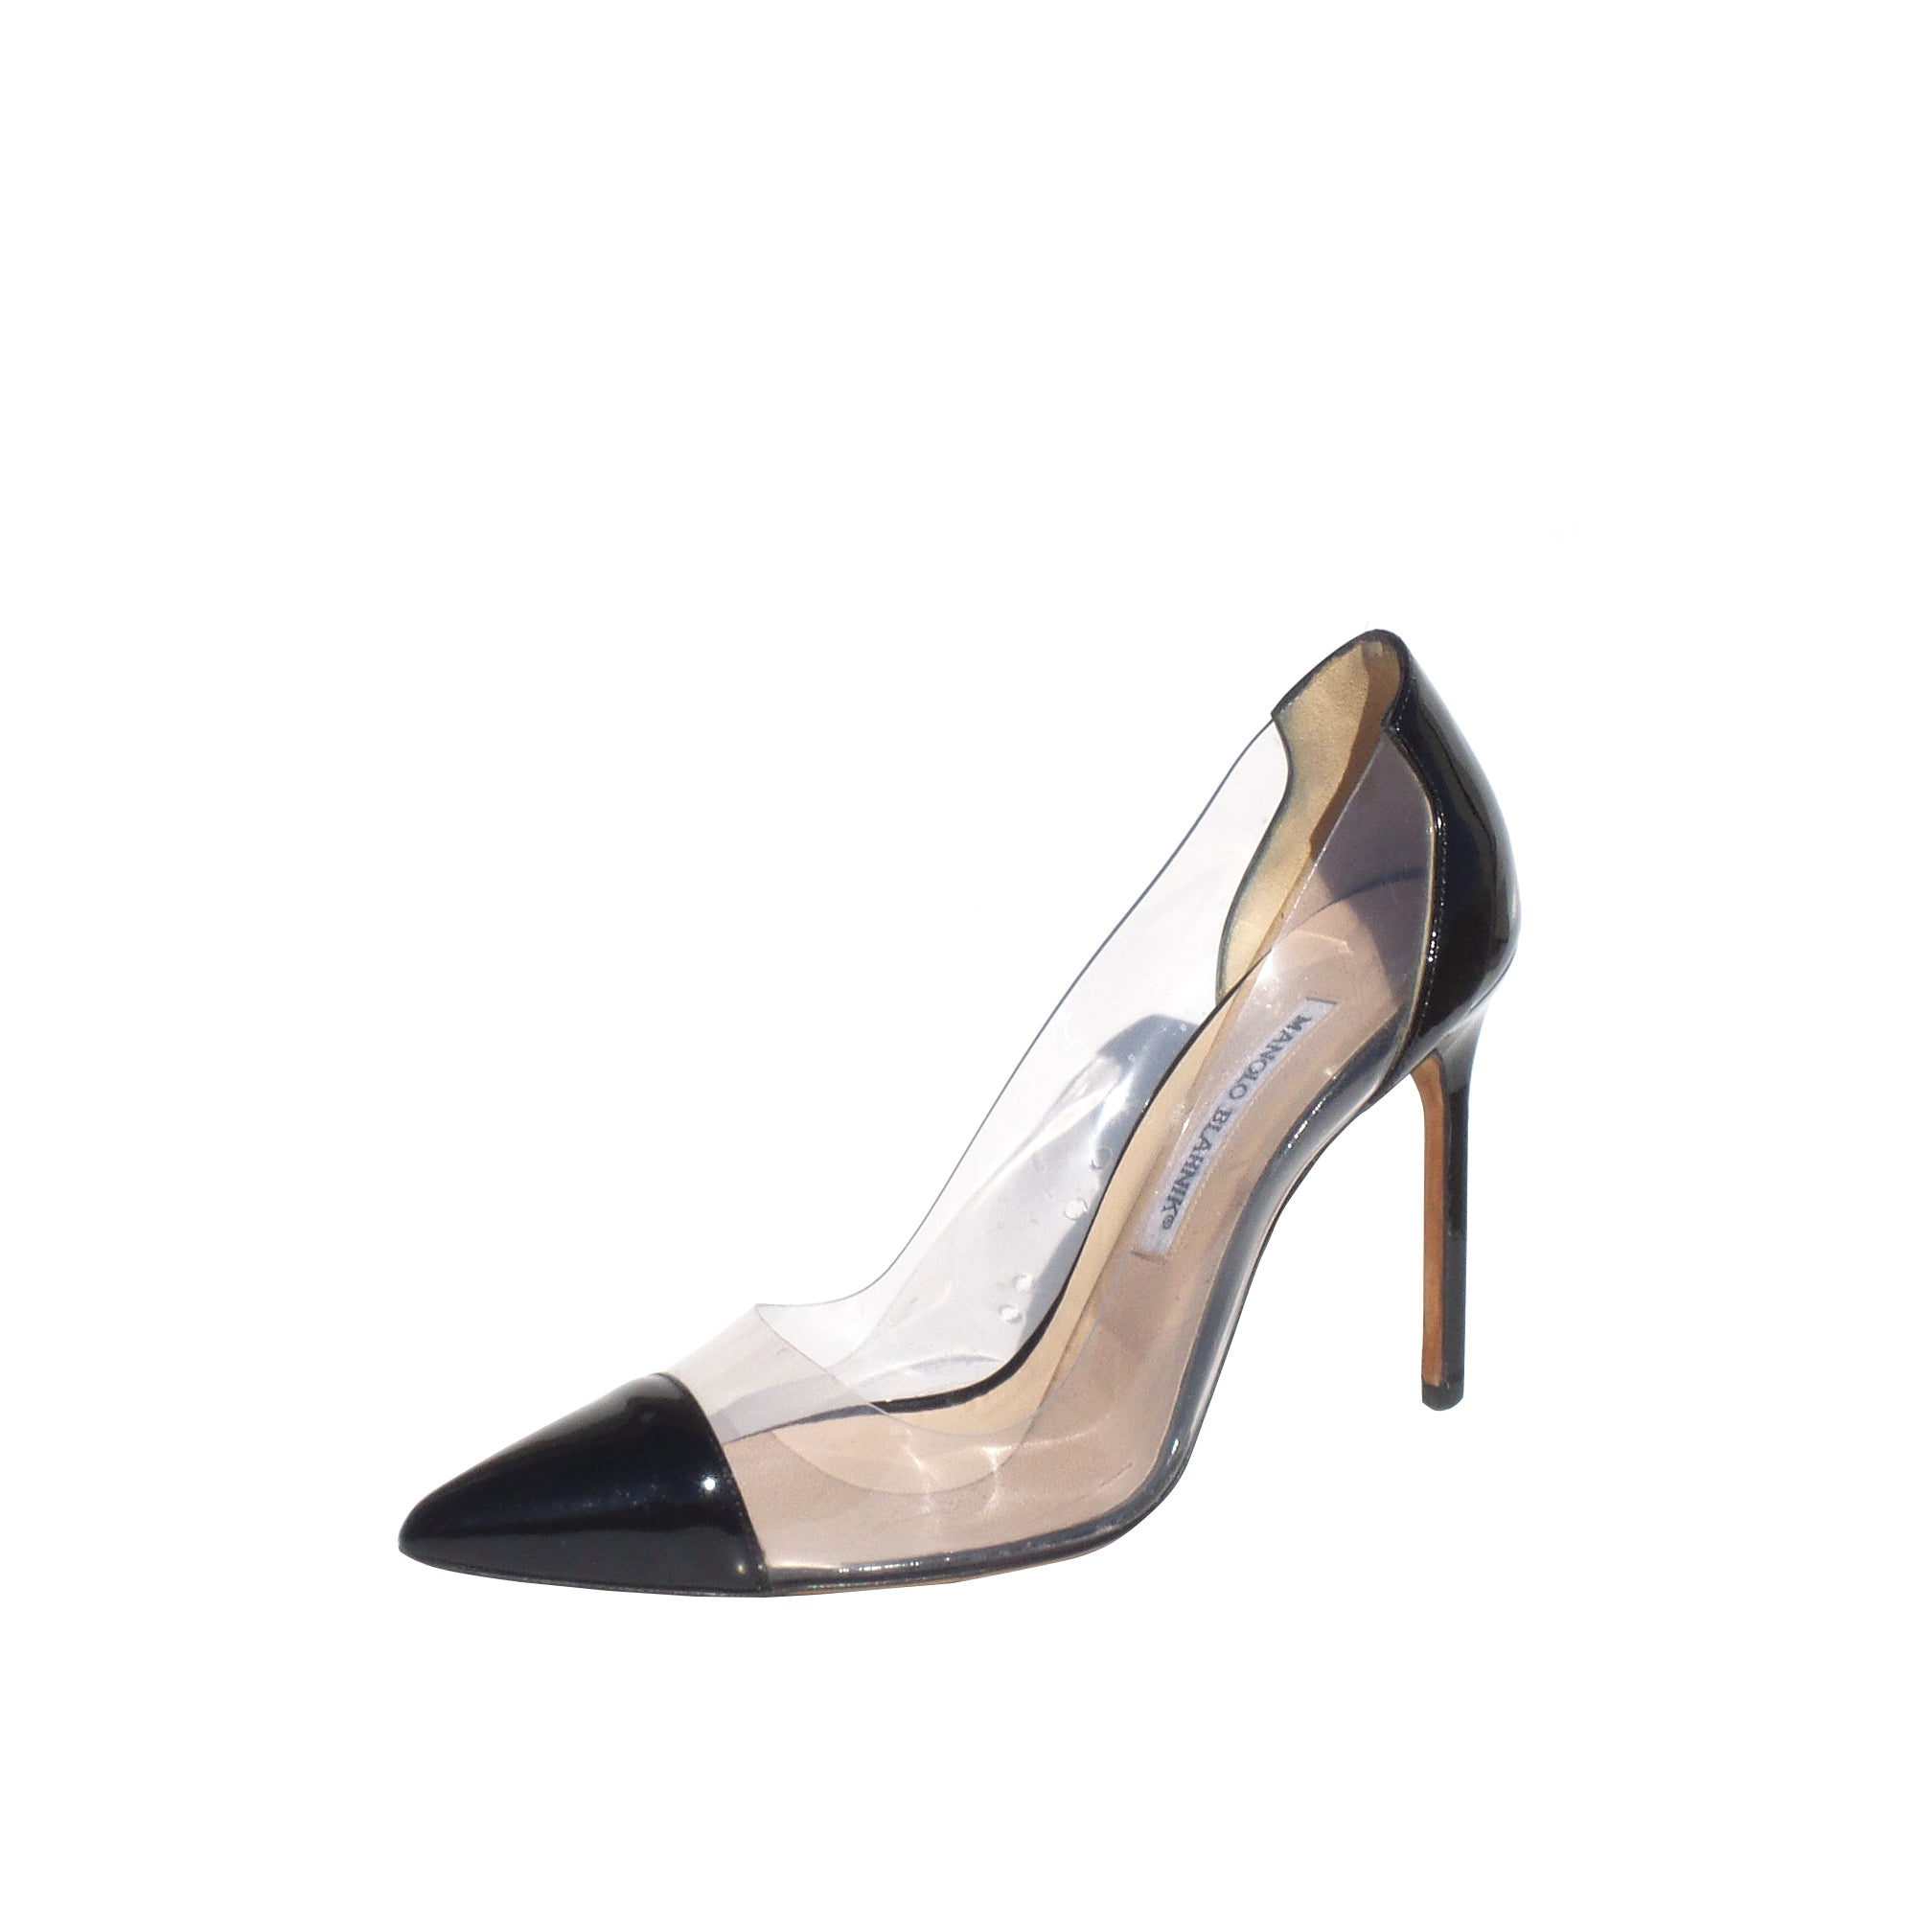 'Sold' MANOLO BLAHNIK Pacha Clear PVC Black Patent Pointed Cap Toe Heels Pumps 38.5 GUC